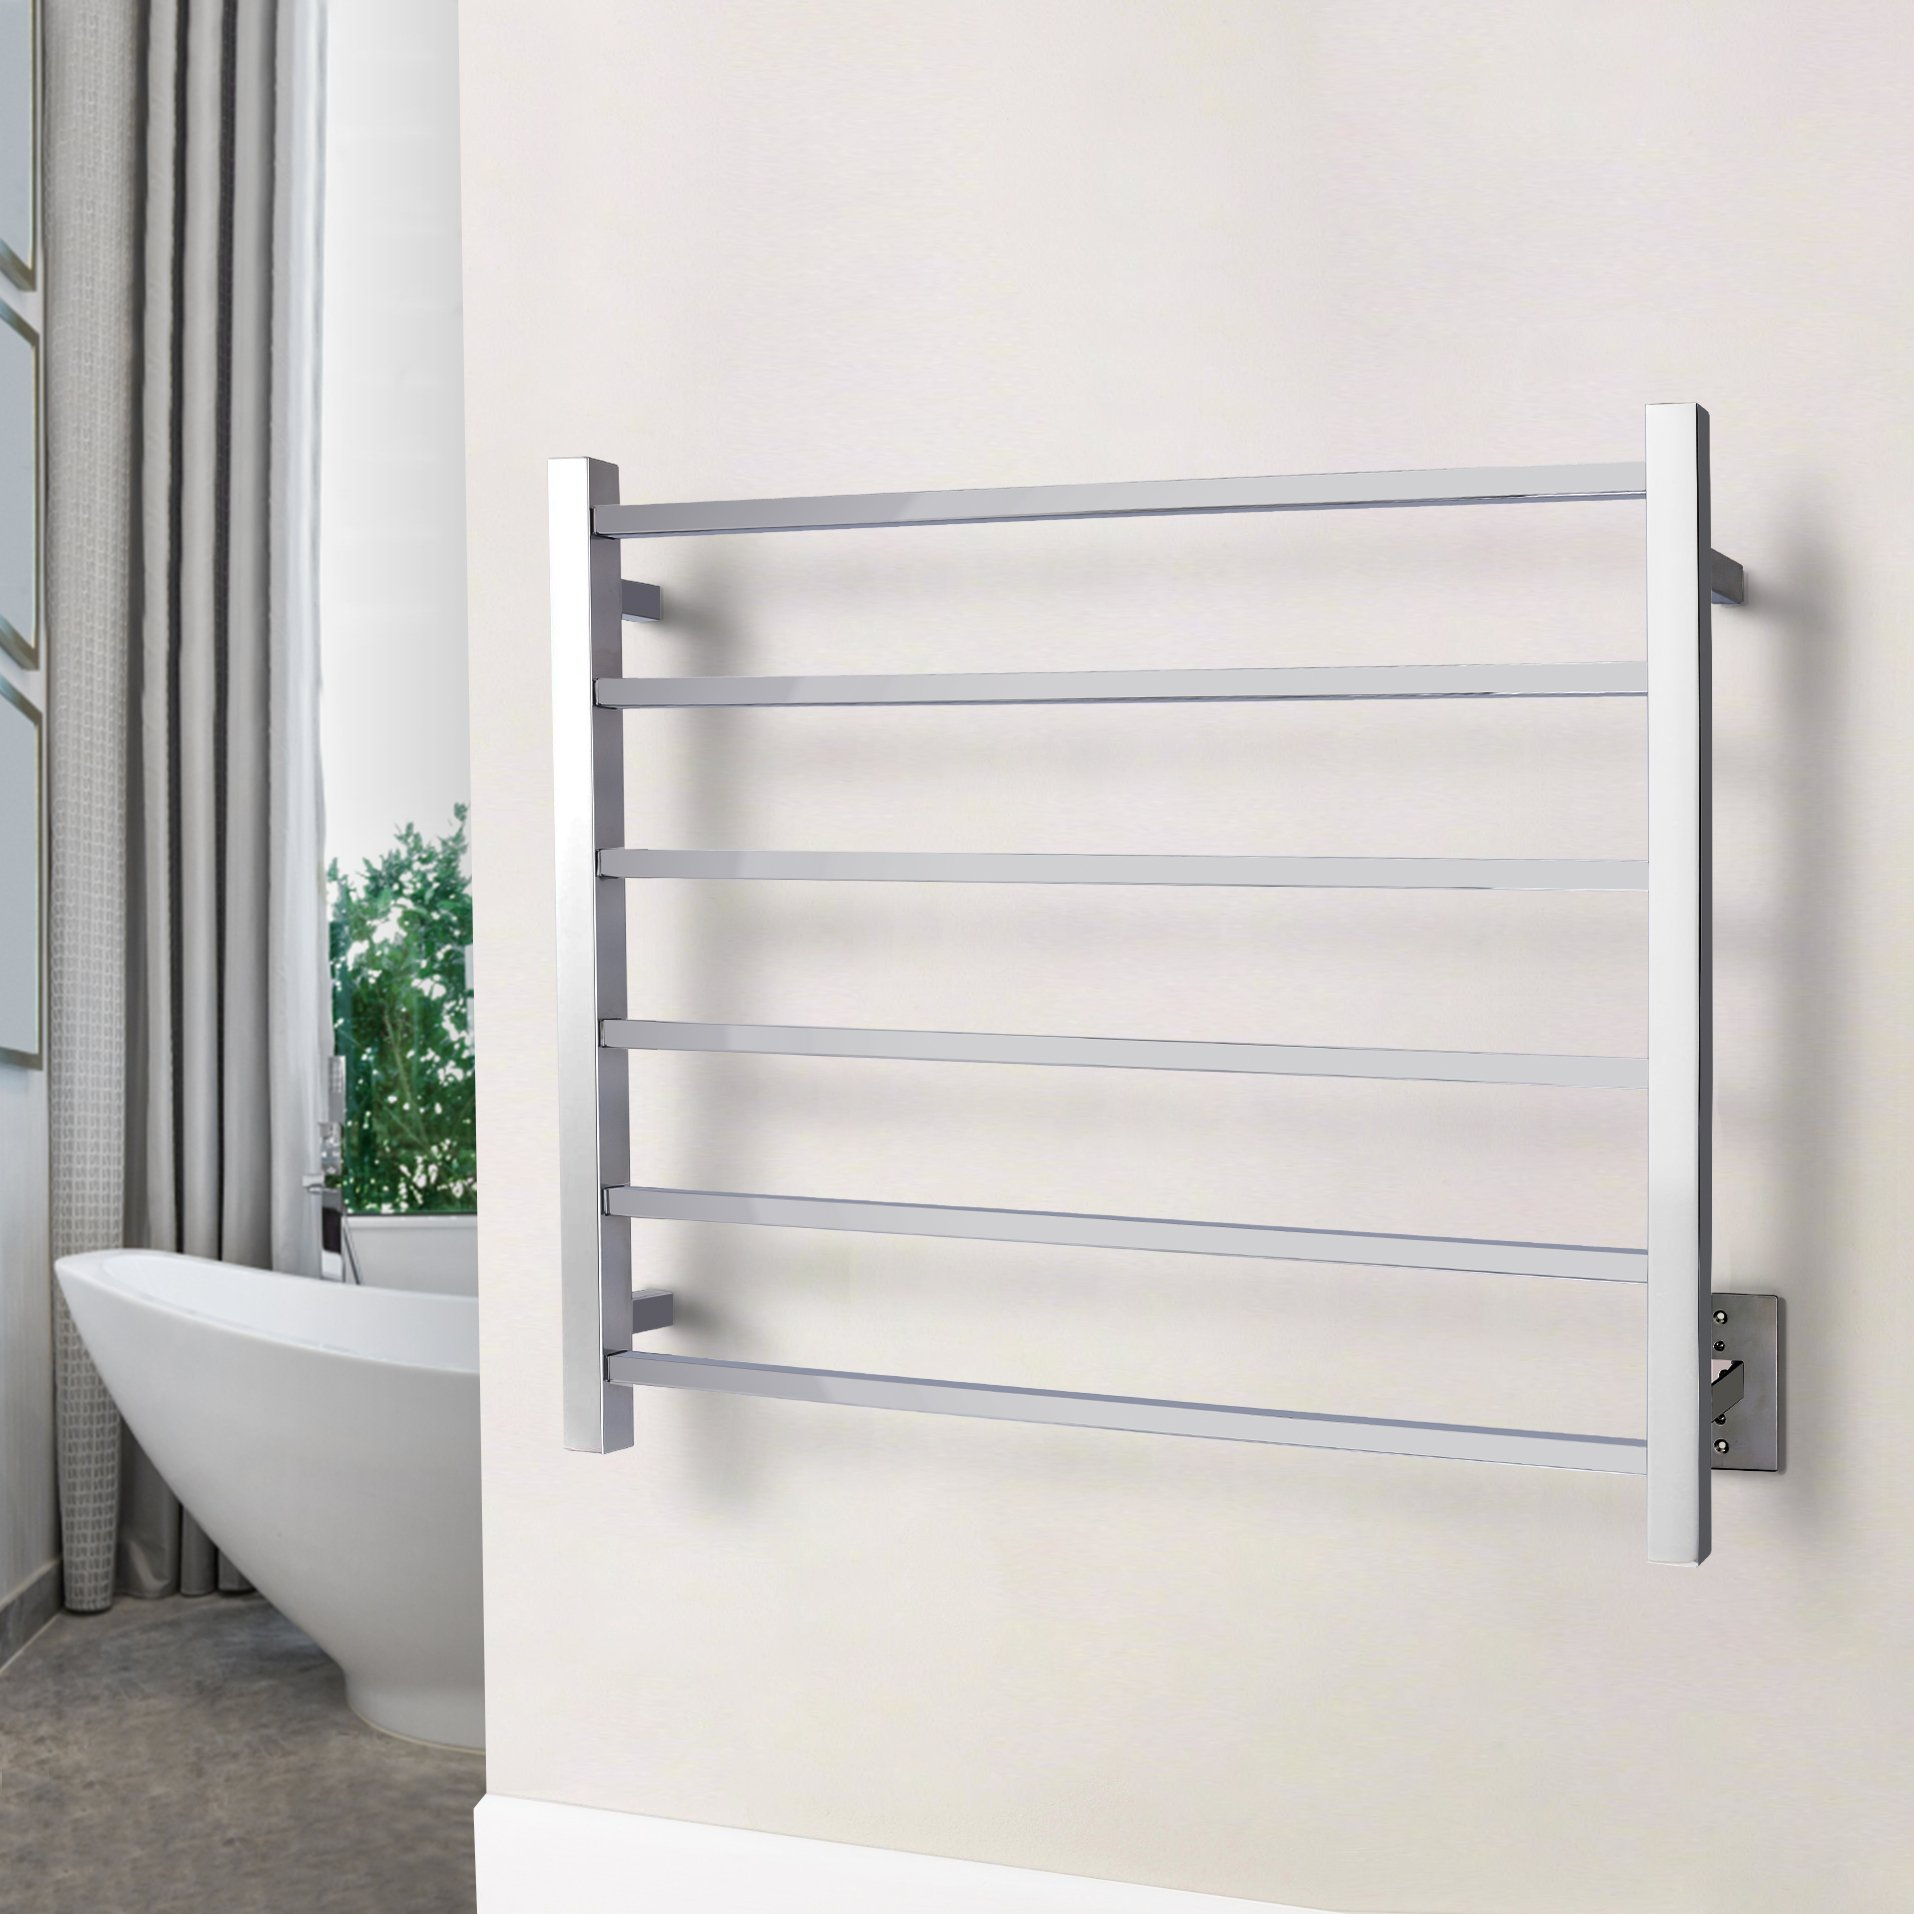 Towel Warmers Everything You Need To Know